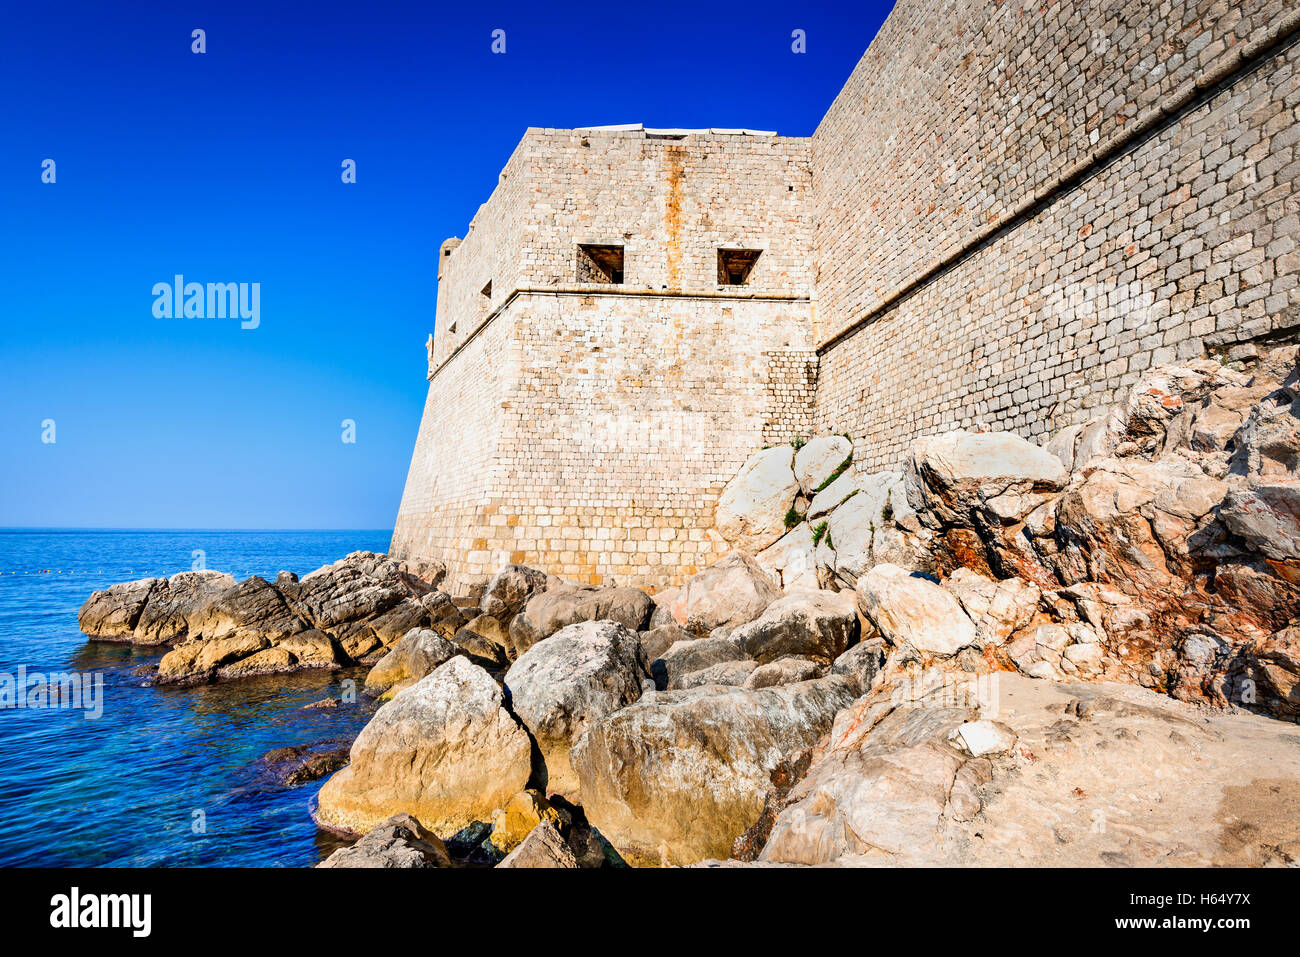 Dubrovnik, Croatia. Spectacular picturesque view on the old town of Ragusa, Dalmatia. - Stock Image